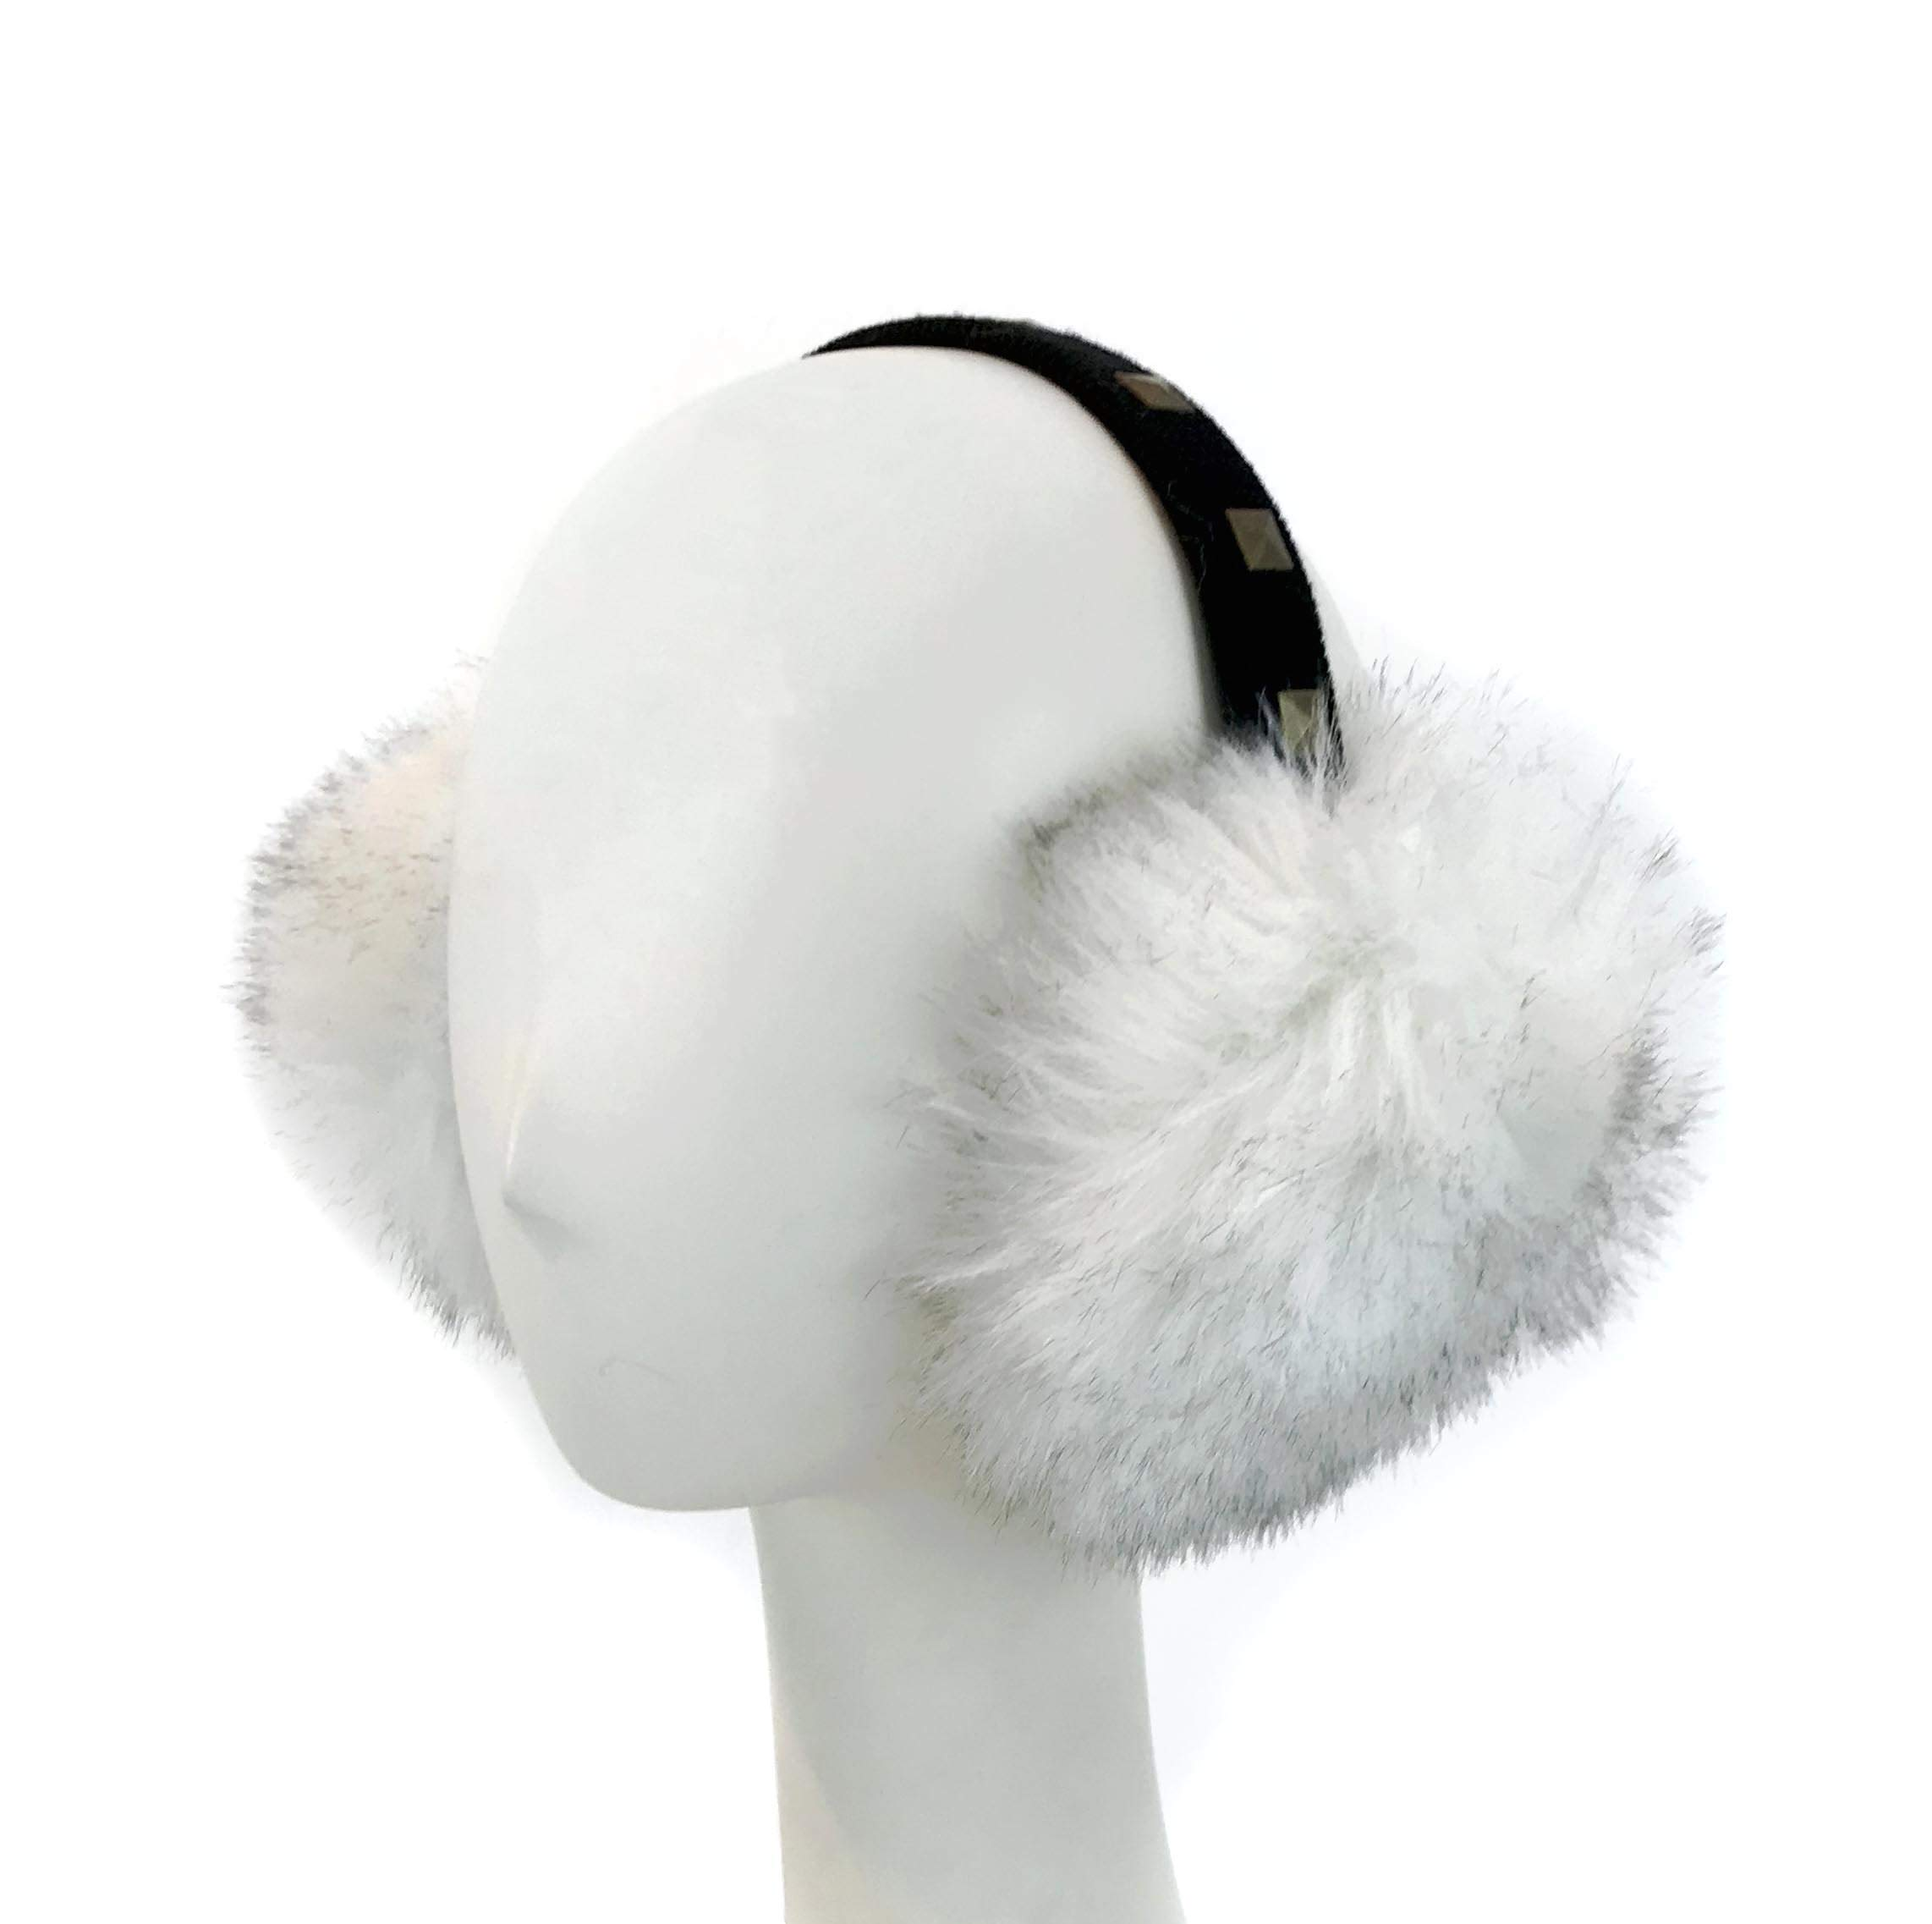 Surell Faux Fox Fur Earmuffs Studded Non Adjustable Band, Ear Warmers, Perfect Outerwear Luxury Gift